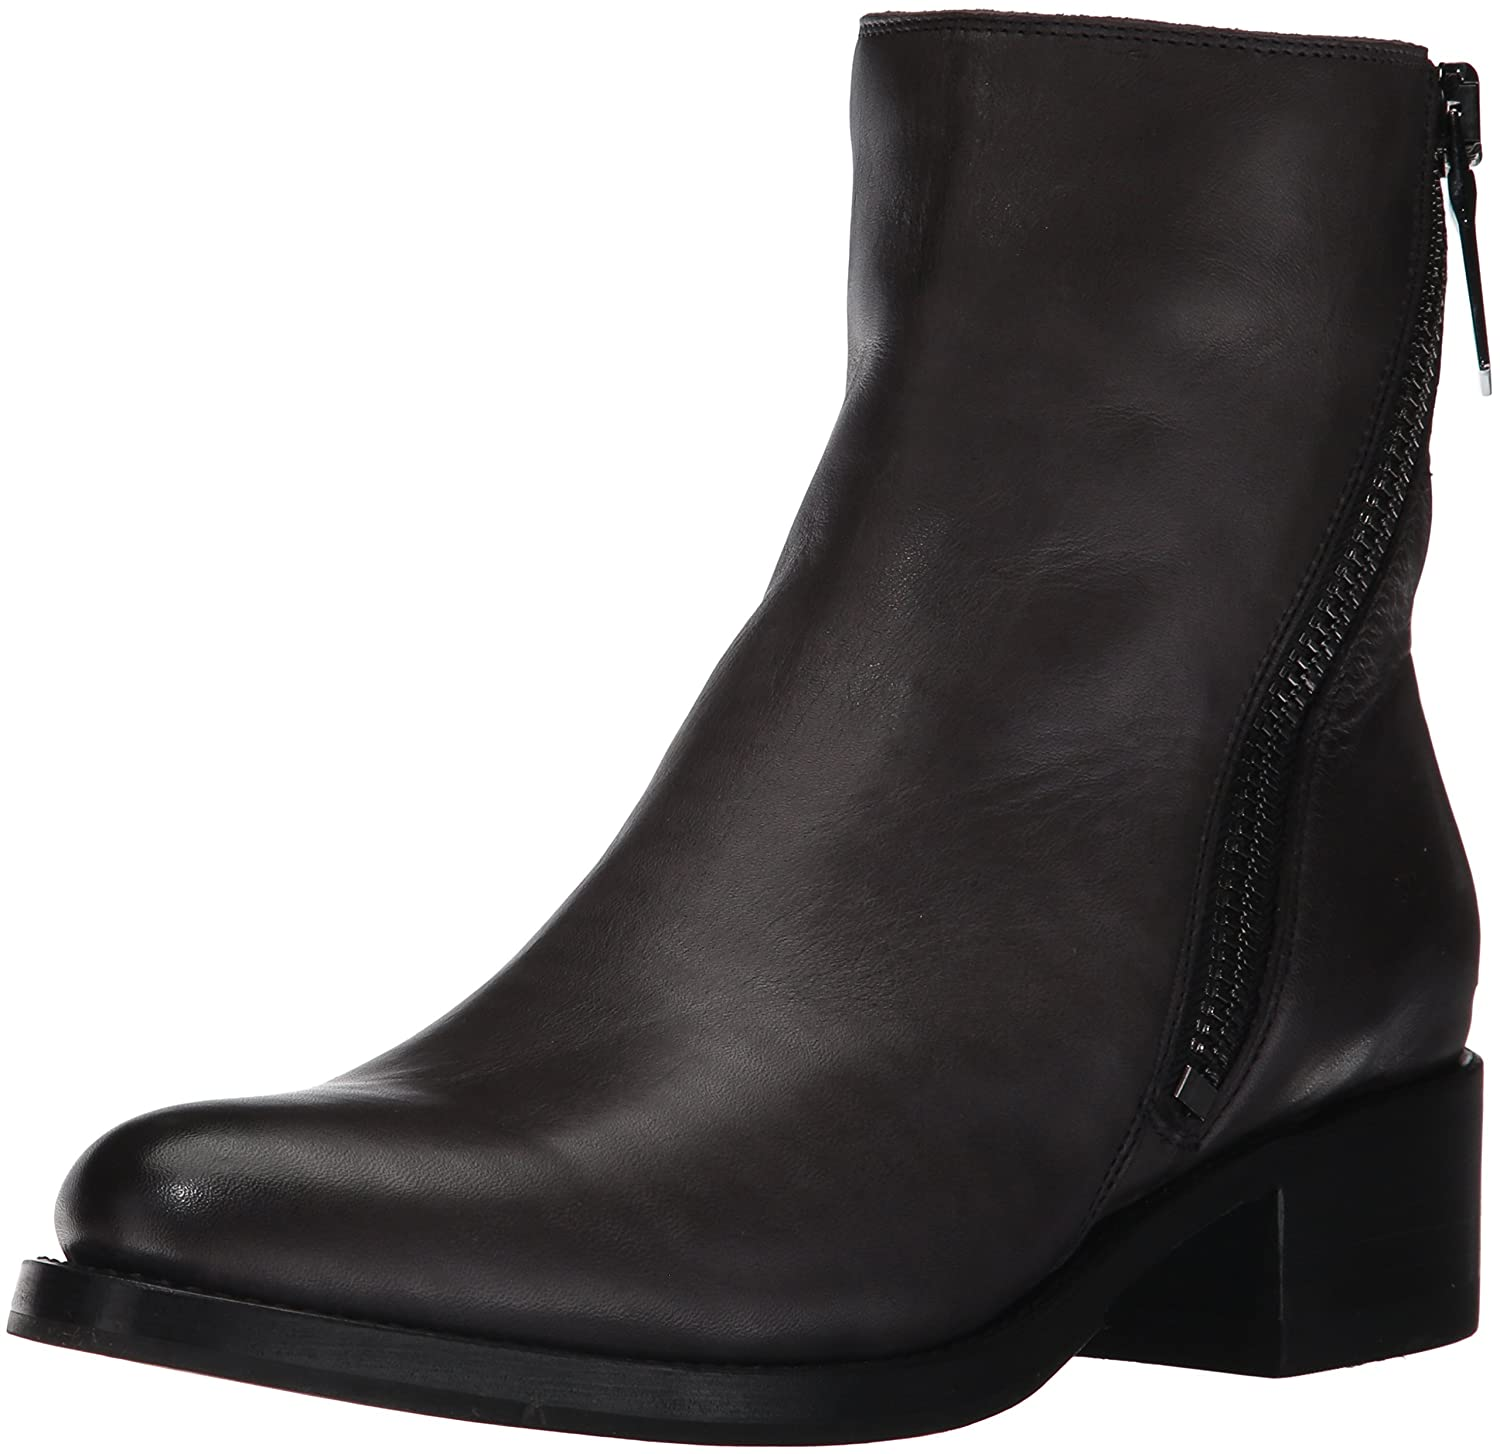 FRYE Women's Demi Zip Bootie Boot B01MS3T12R 8.5 B(M) US|Charcoal Polished Soft Full Grain